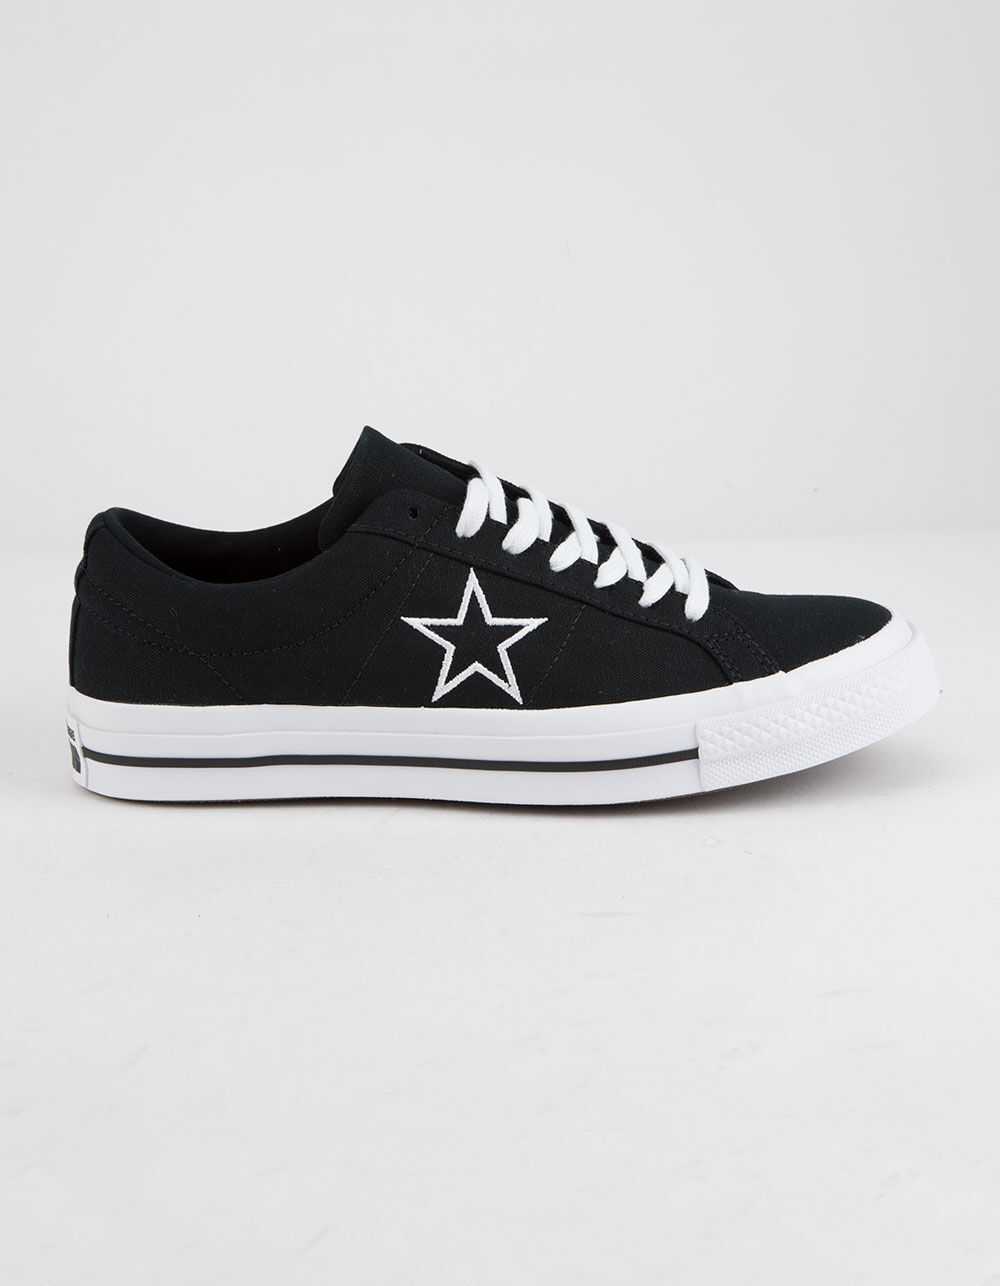 CONVERSE One Star Ox Black & White Low Top Shoes